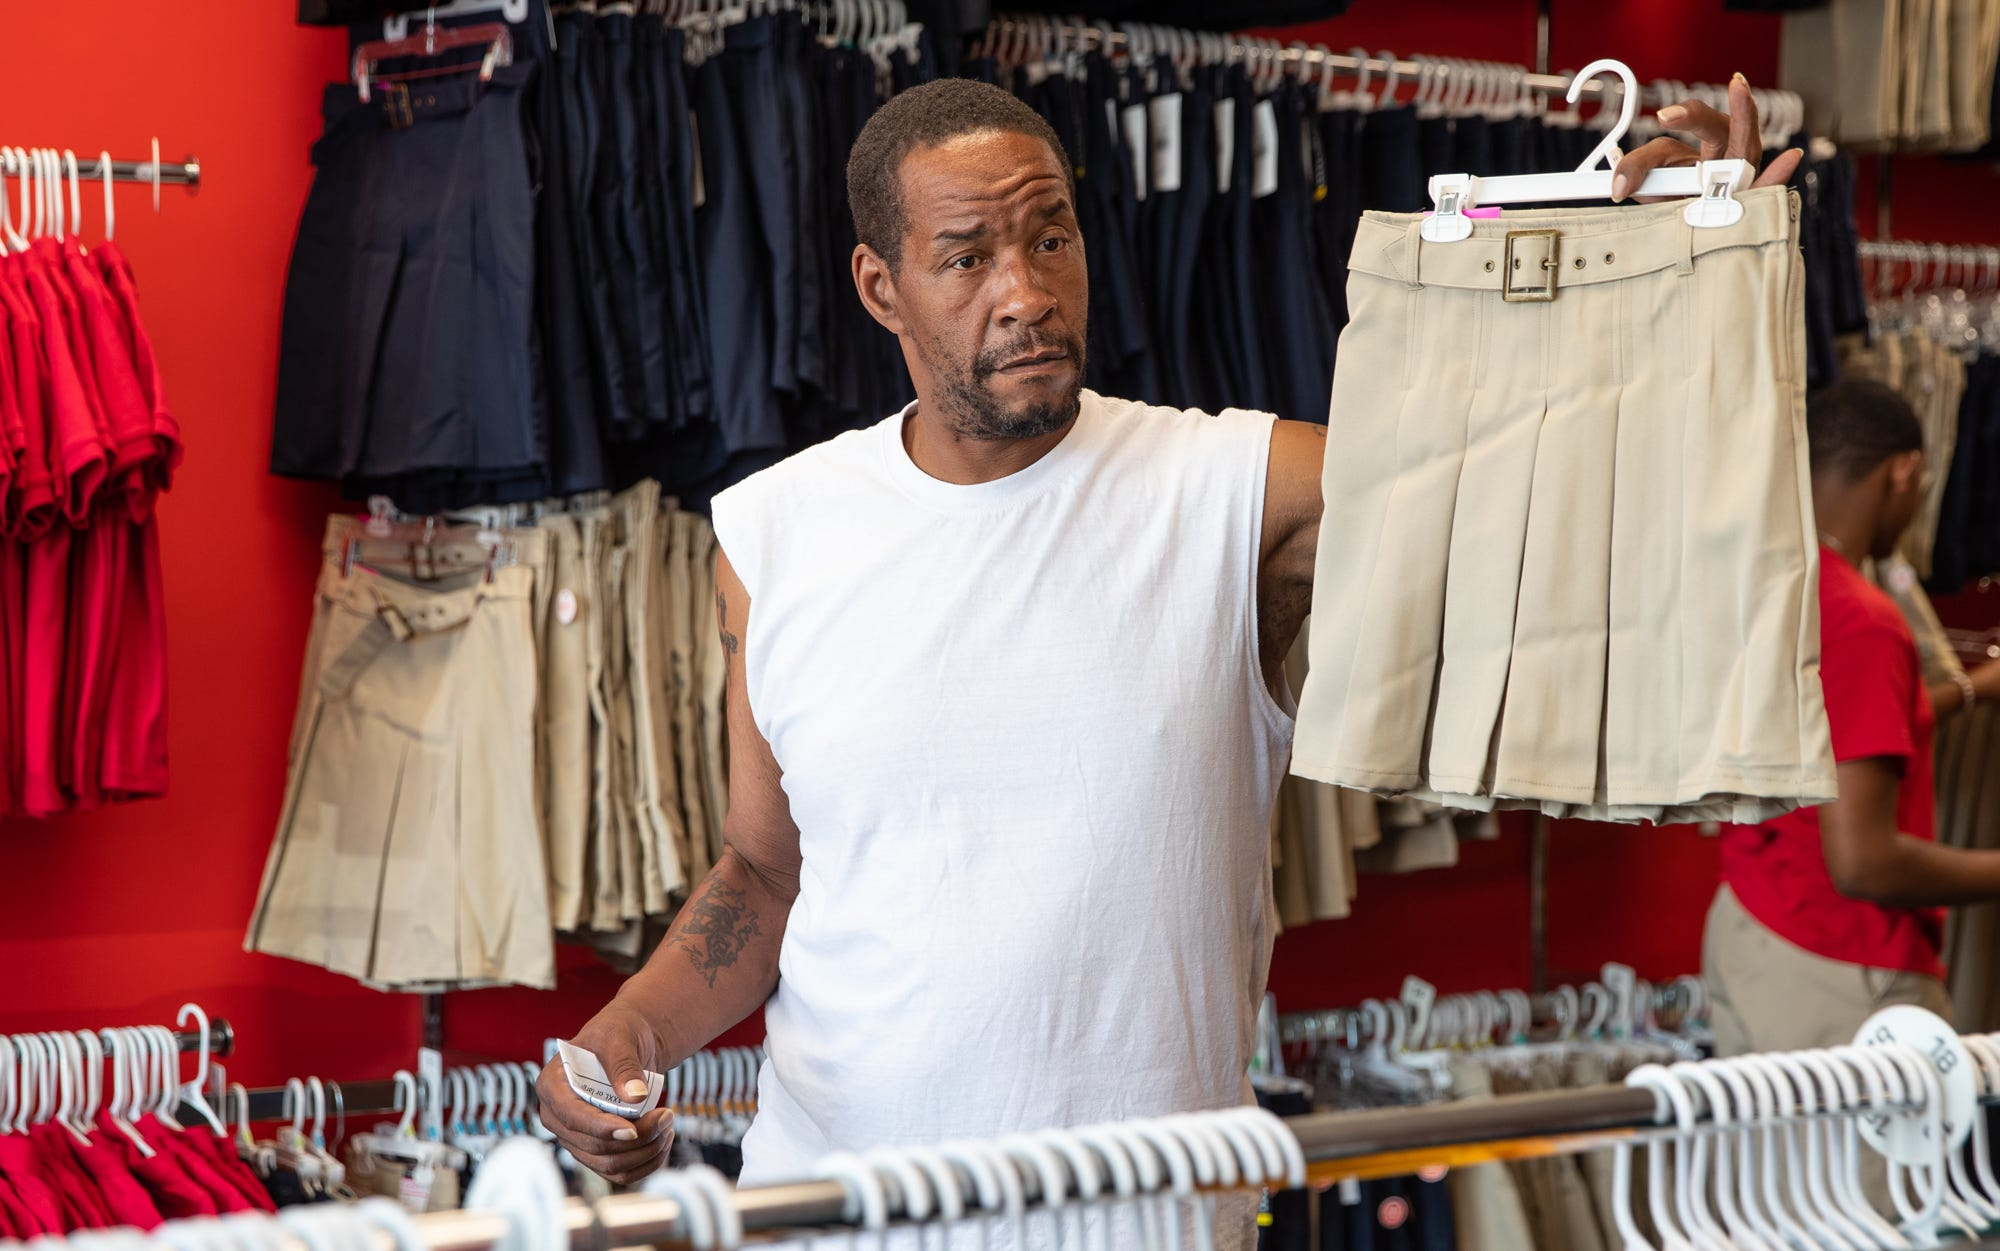 """Kevin Rhodes Sr. holds up a skirt to get his daughter Ke'Asia's opinion while shopping for school uniforms at School Zone on Wednesday, July 24, 2019. """"You like this one, momma?"""" he asked. """"Or, you want a dark color?"""" Ke'Asia would pick the light color skirt. """"I cook, clean, everything. I do the whole works,"""" said Rhodes Sr. """"It's kind of rough but I can handle it though."""""""